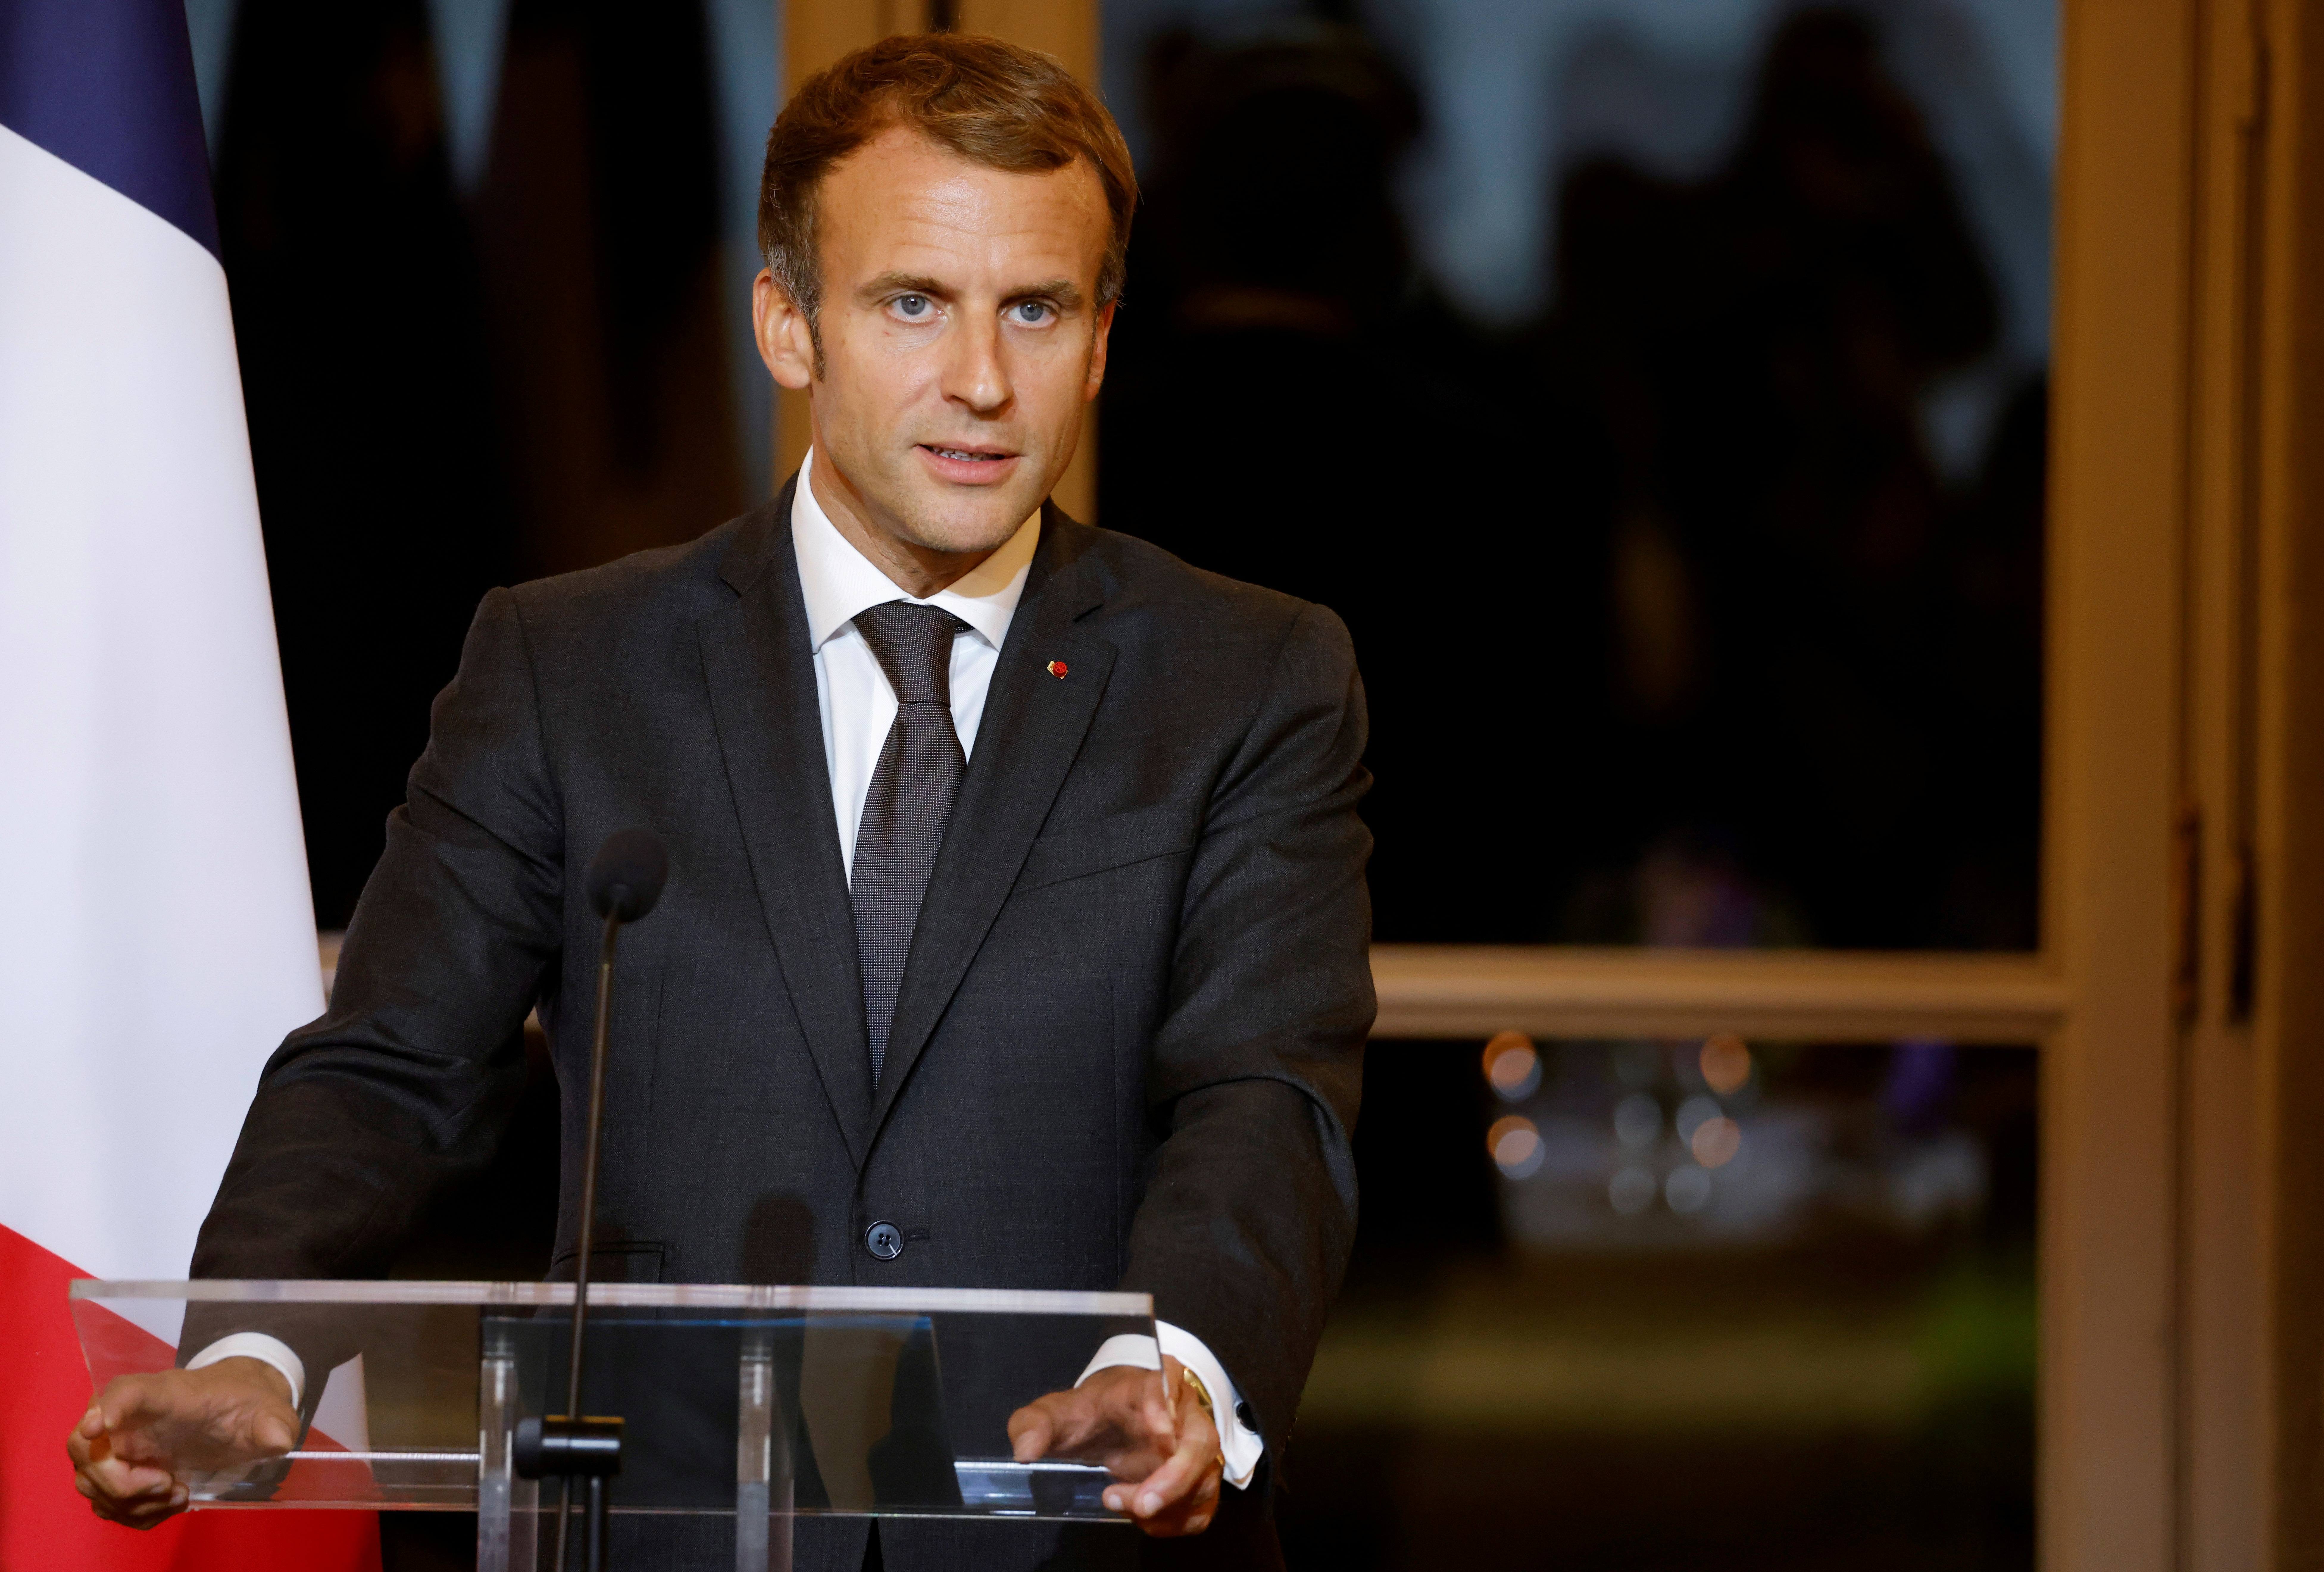 French President Emmanuel Macron delivers a speech as he hosts a dinner at the Elysee Palace as part of the closing ceremony of The Africa2020 Season, in Paris, France September 30, 2021.  Ludovic Marin/Pool via REUTERS